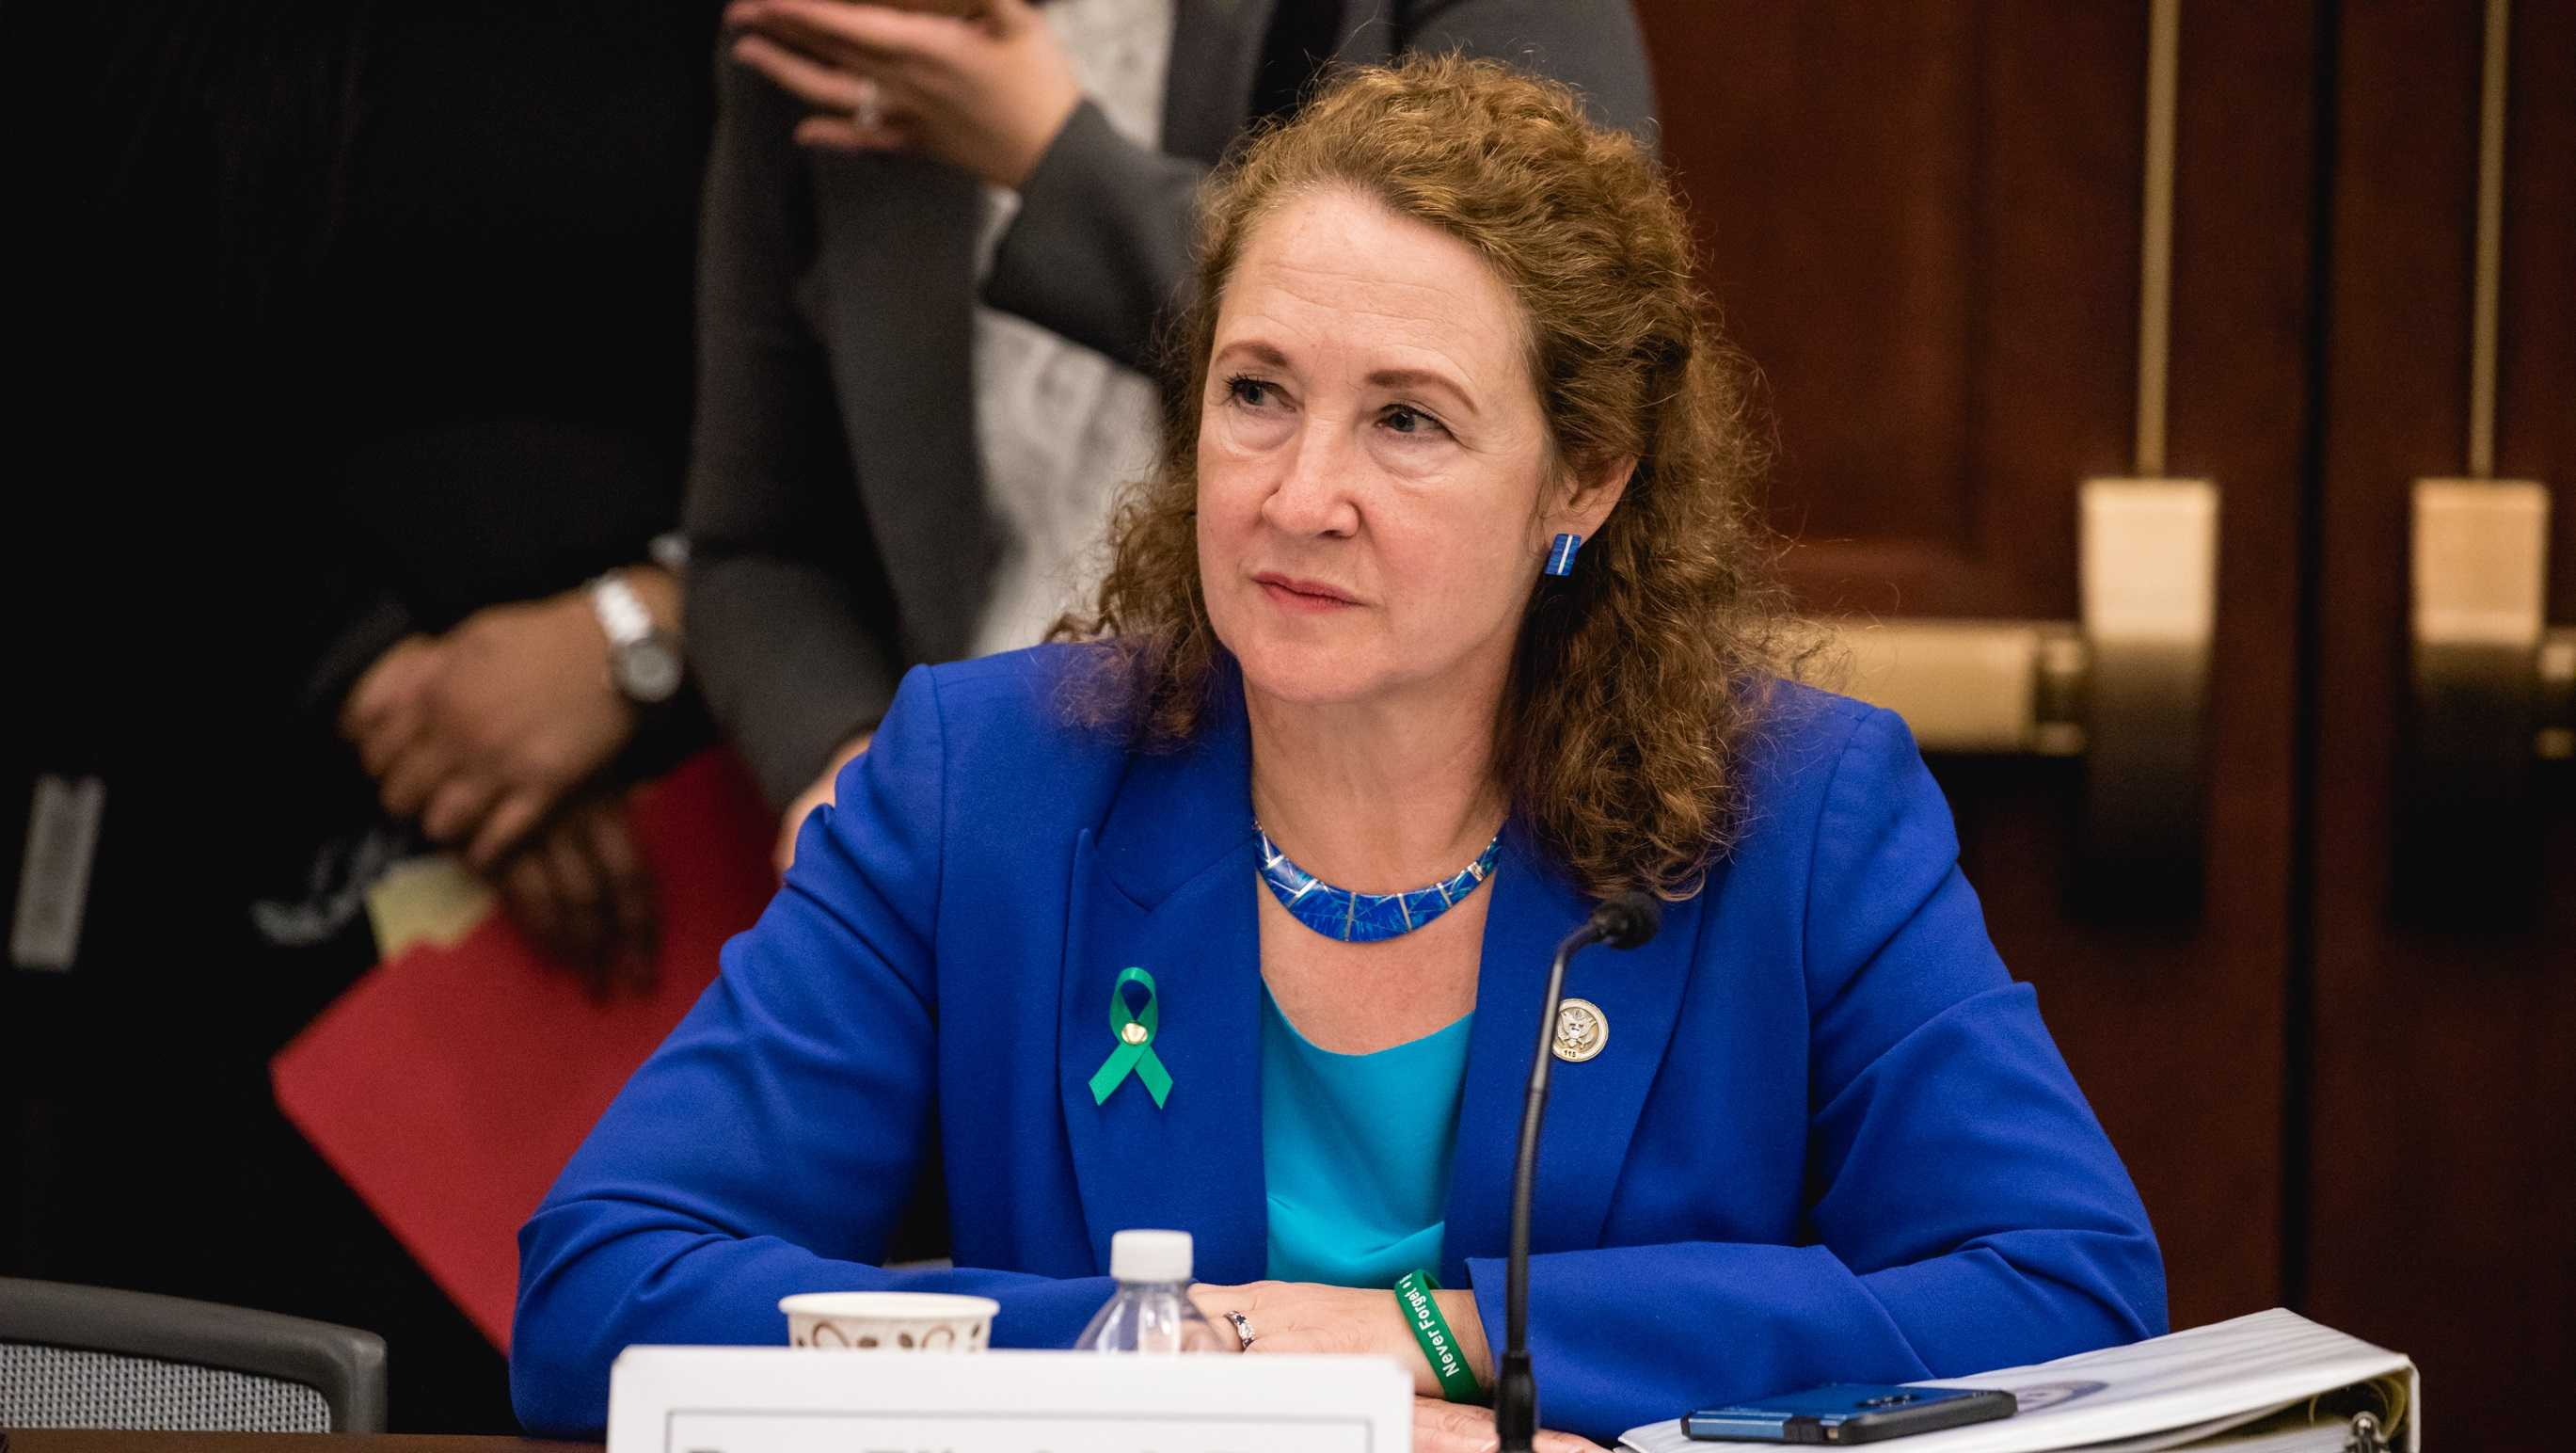 Rep. Elizabeth Esty (CT 5th District), speaks at a forum to examine evidence-based violence prevention and school safety measures in Washington, D.C., on Tuesday, March 20, 2018.